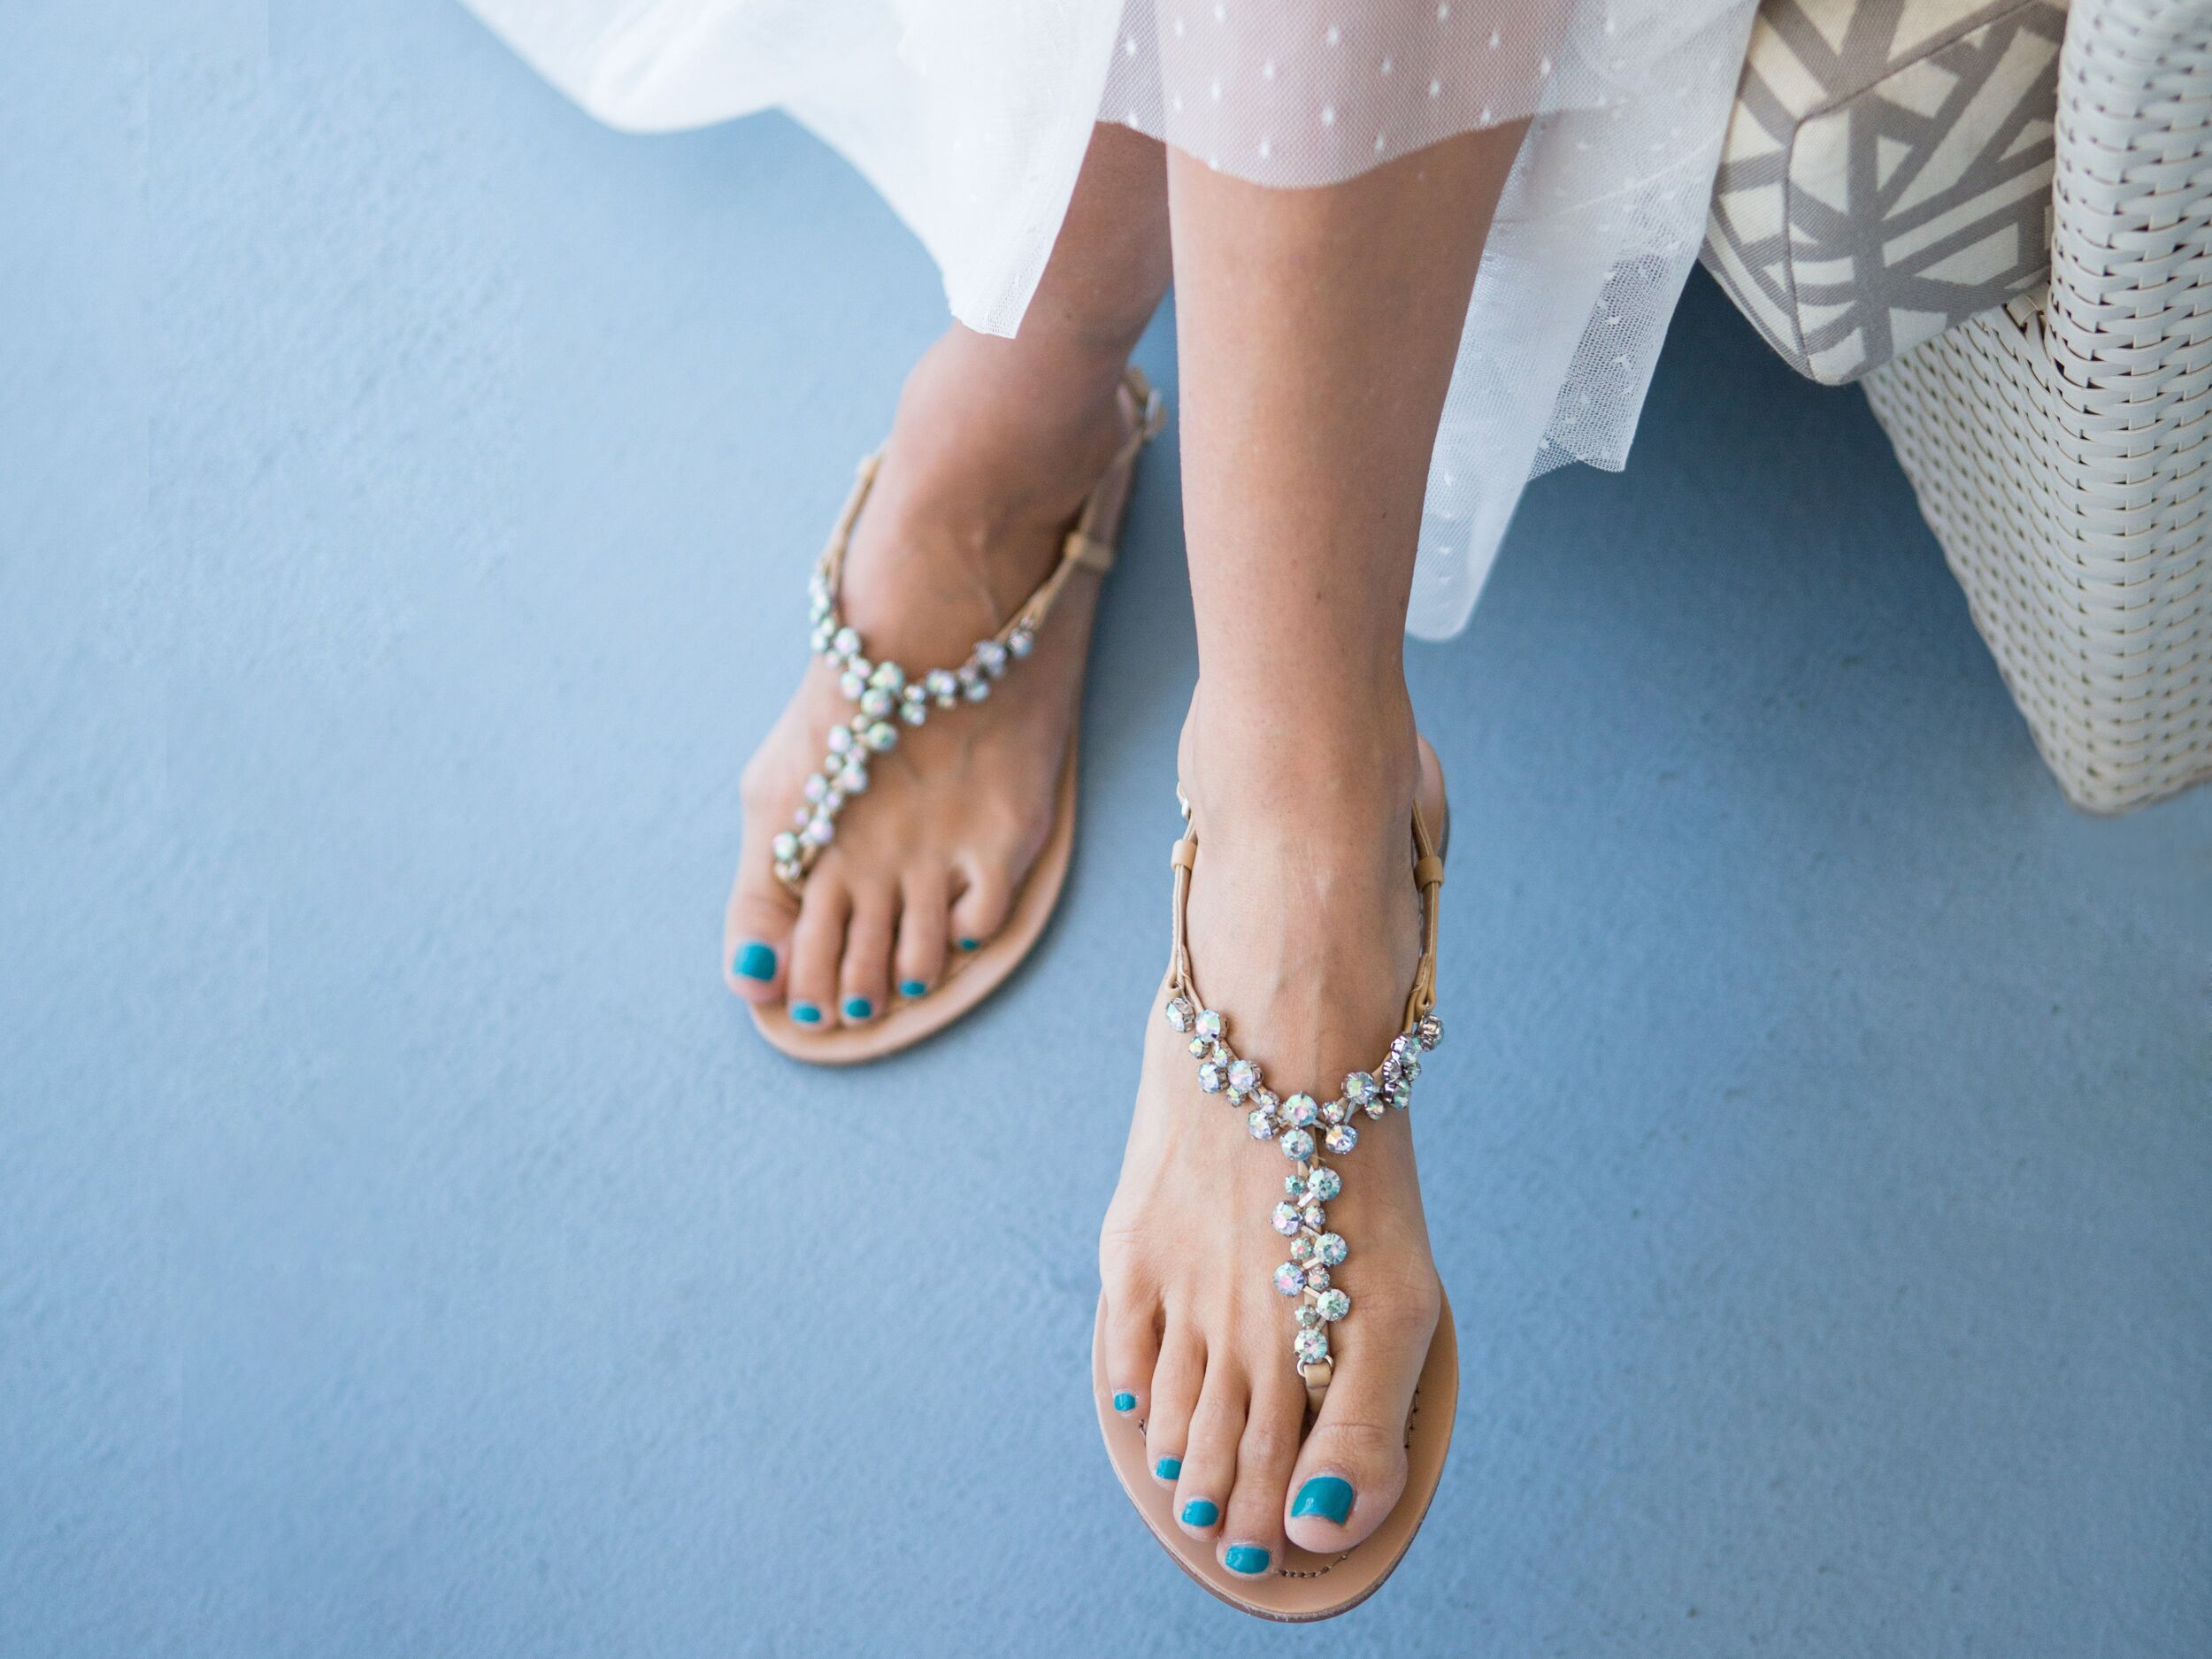 must wedding shoes be white wedding sandals for bride